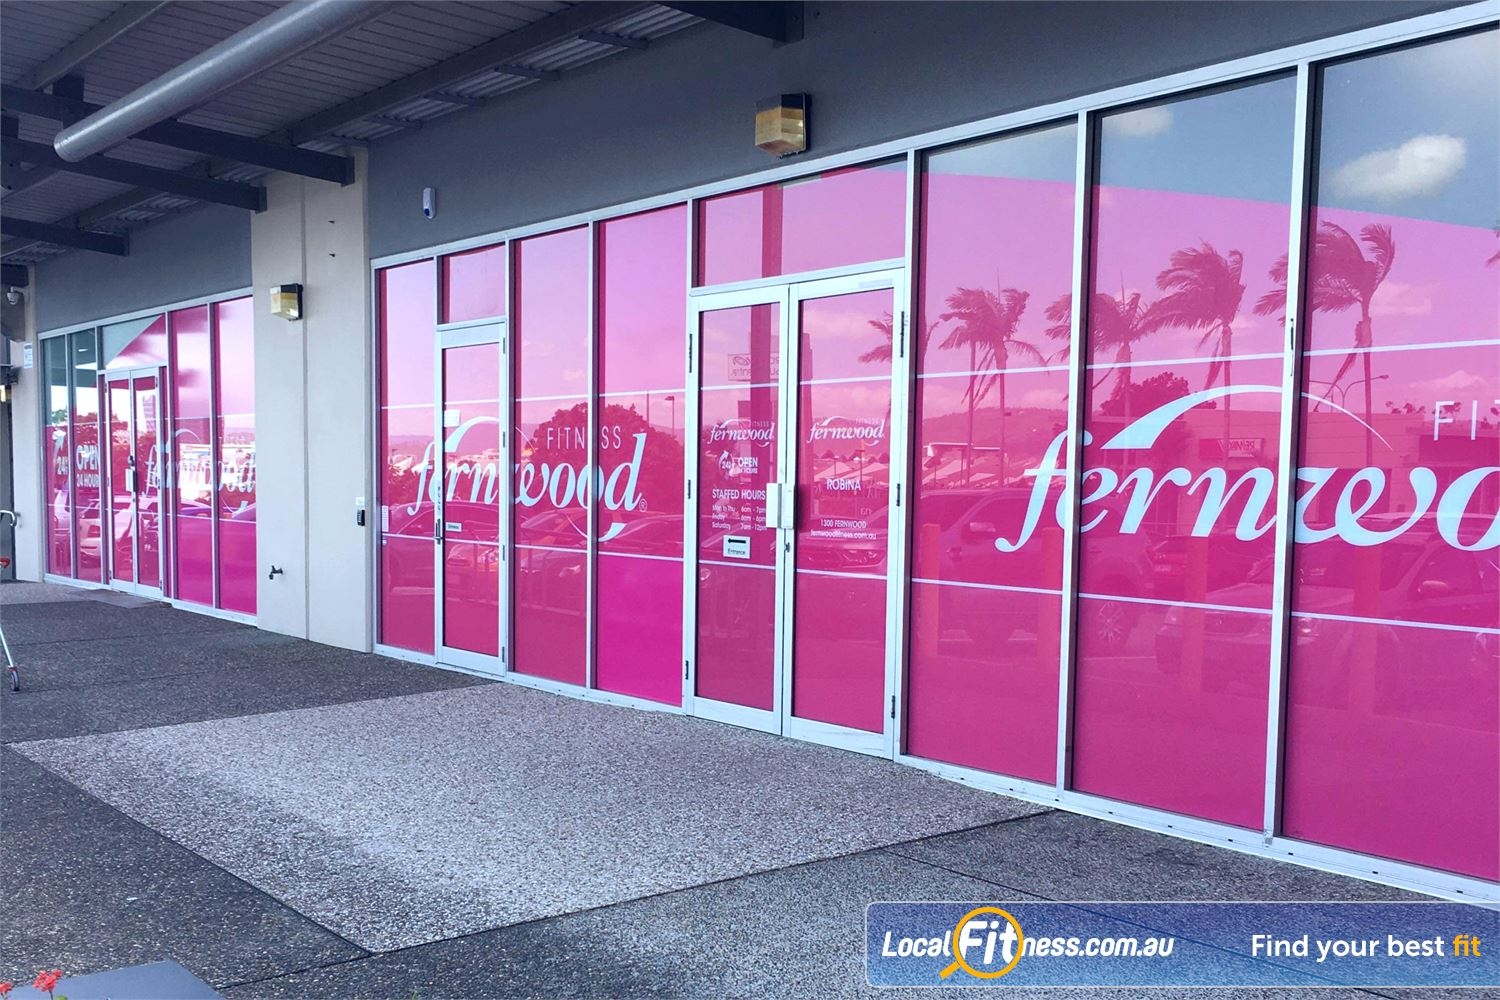 Fernwood Fitness Robina Calling all women night owls and early birds with 24 hour Robina gym access.